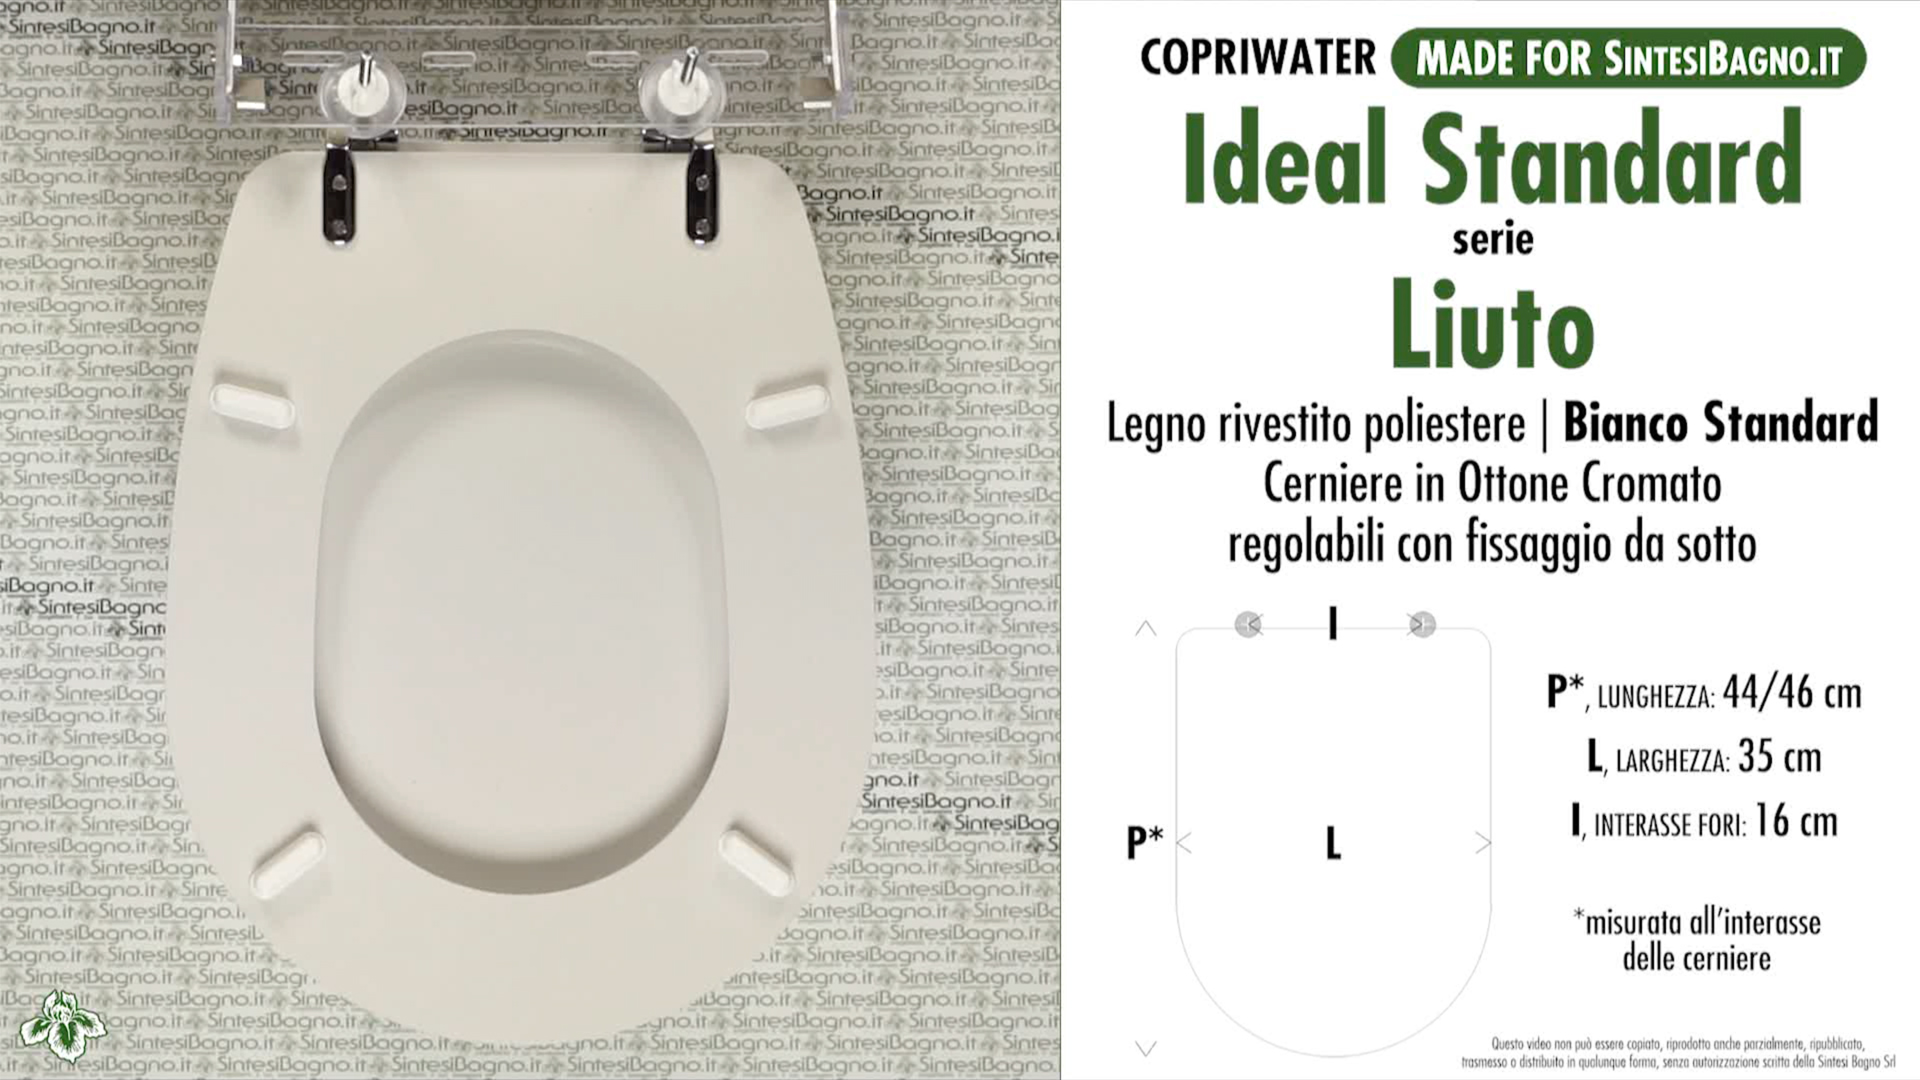 Schede tecniche misure copriwater ideal standard serie liuto for Ideal standard liuto bidet